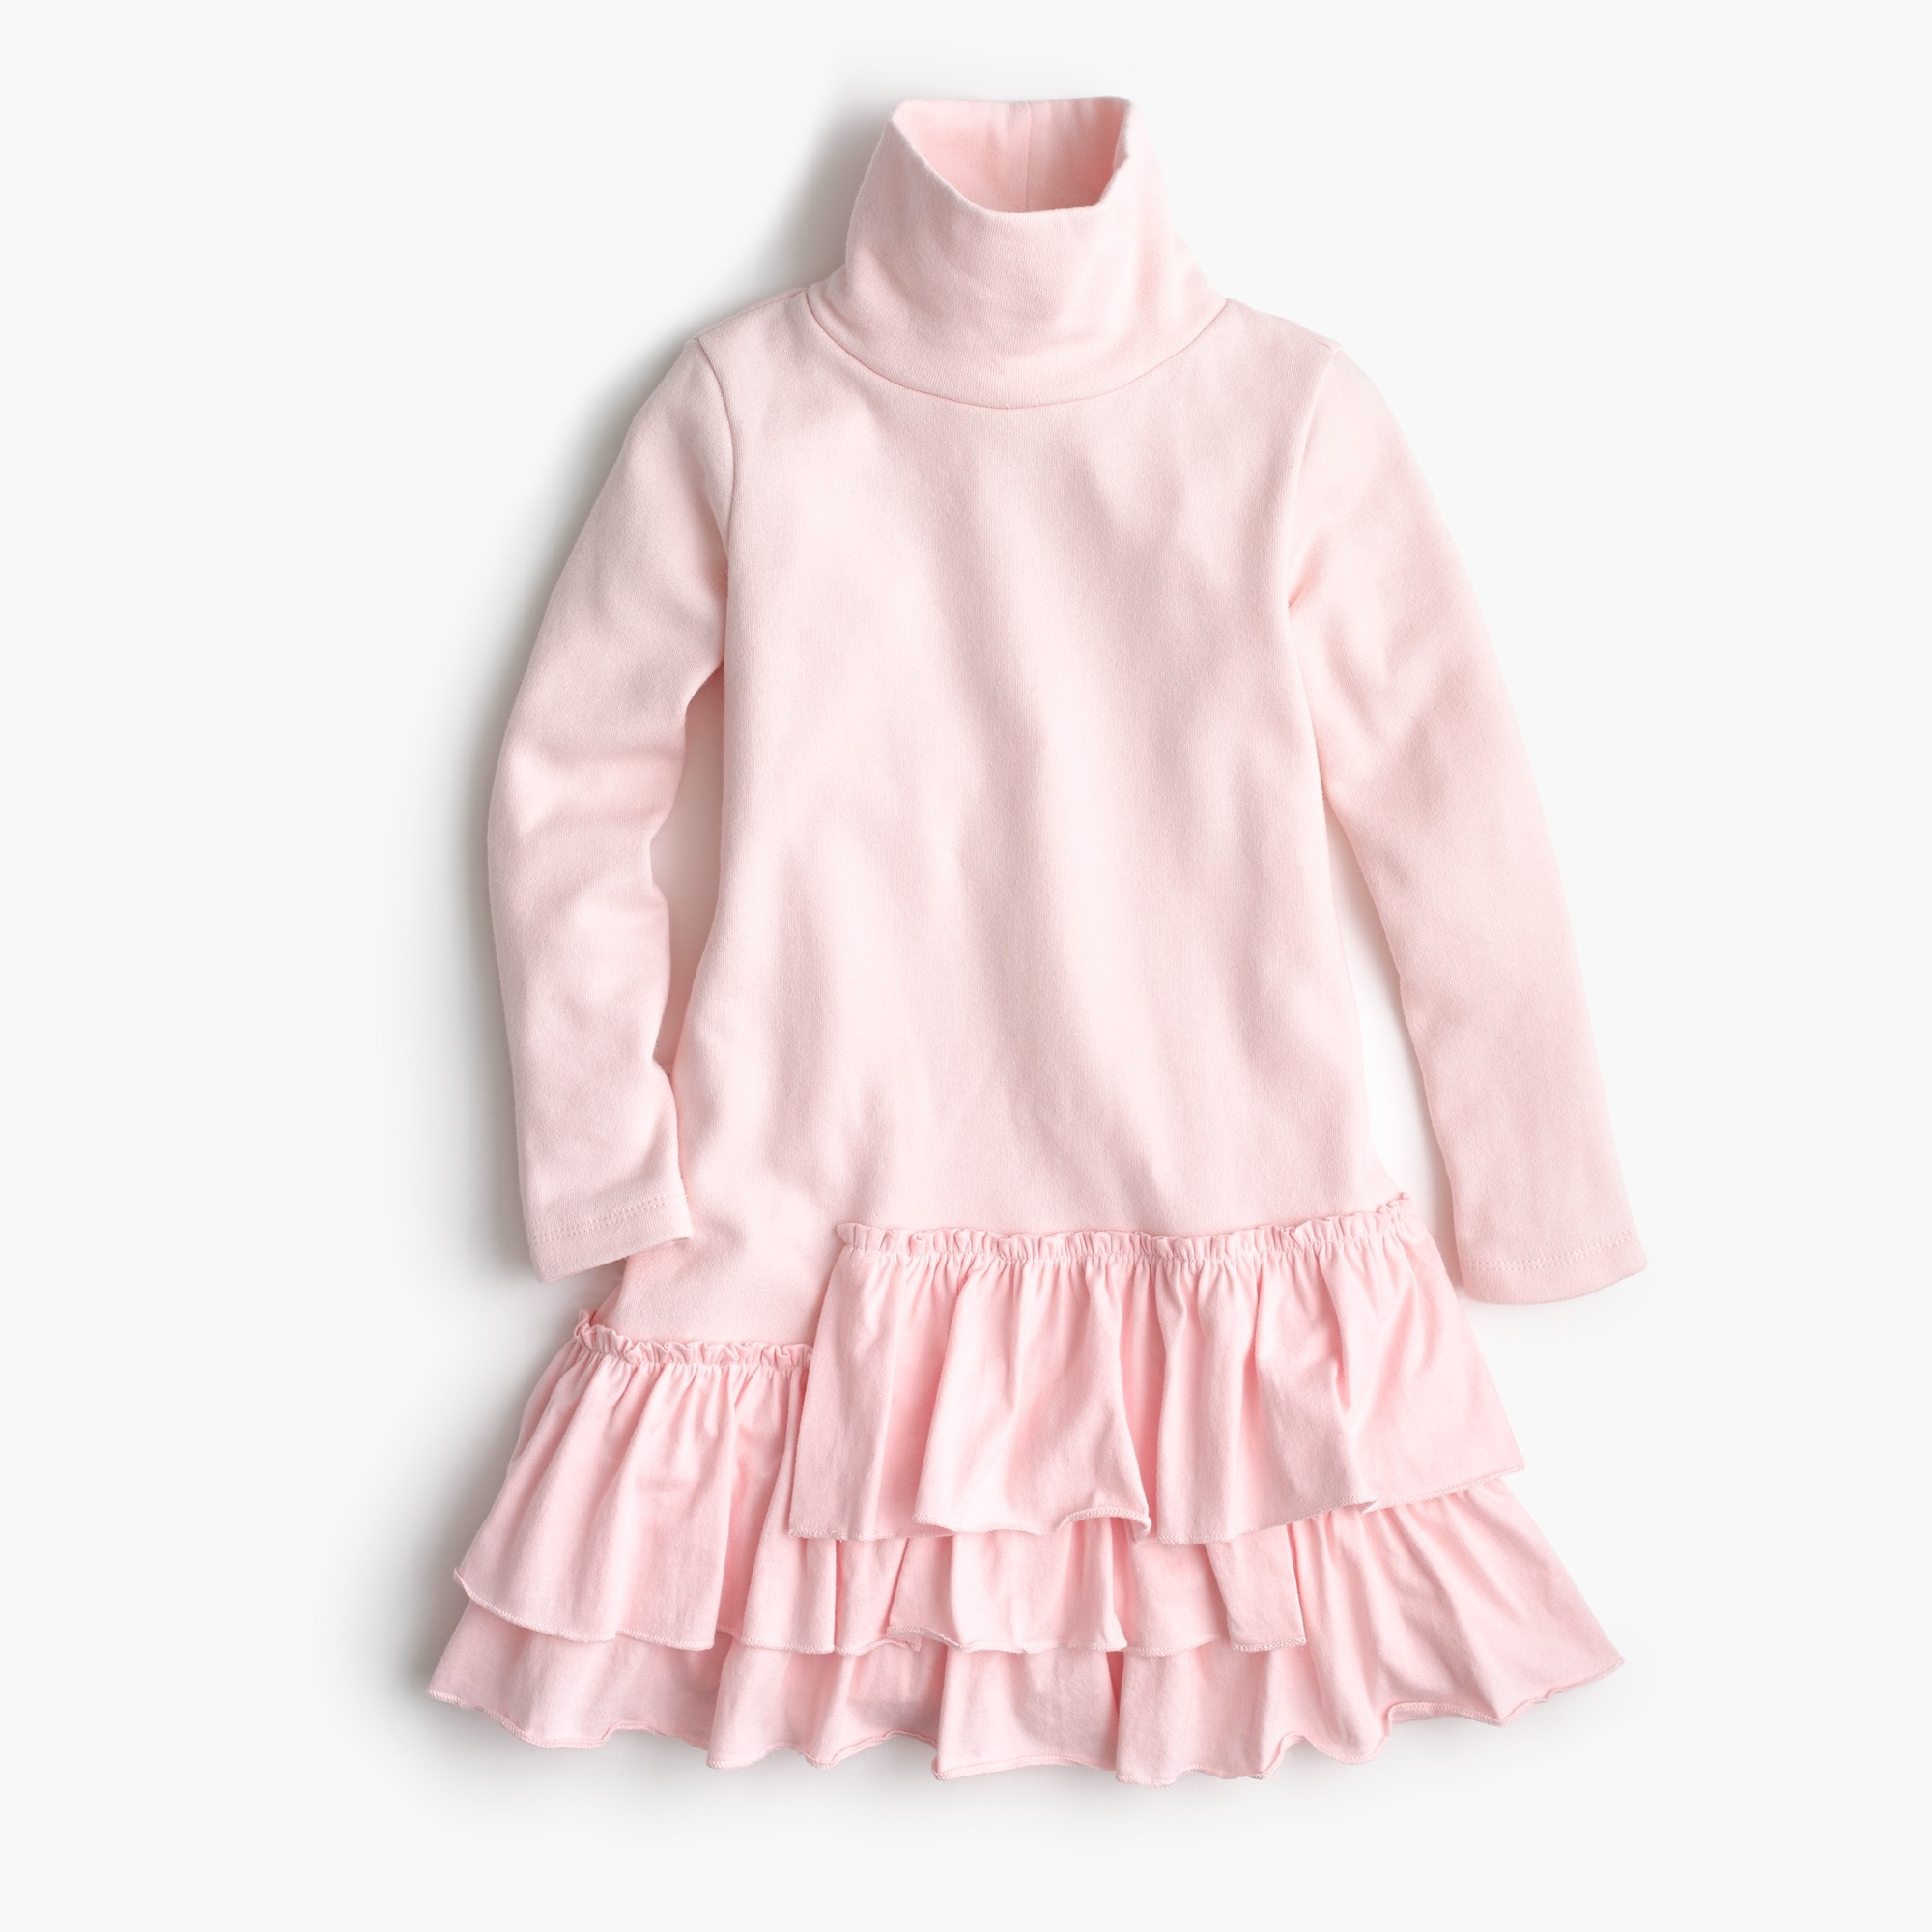 Girls' ruffled turtleneck dress